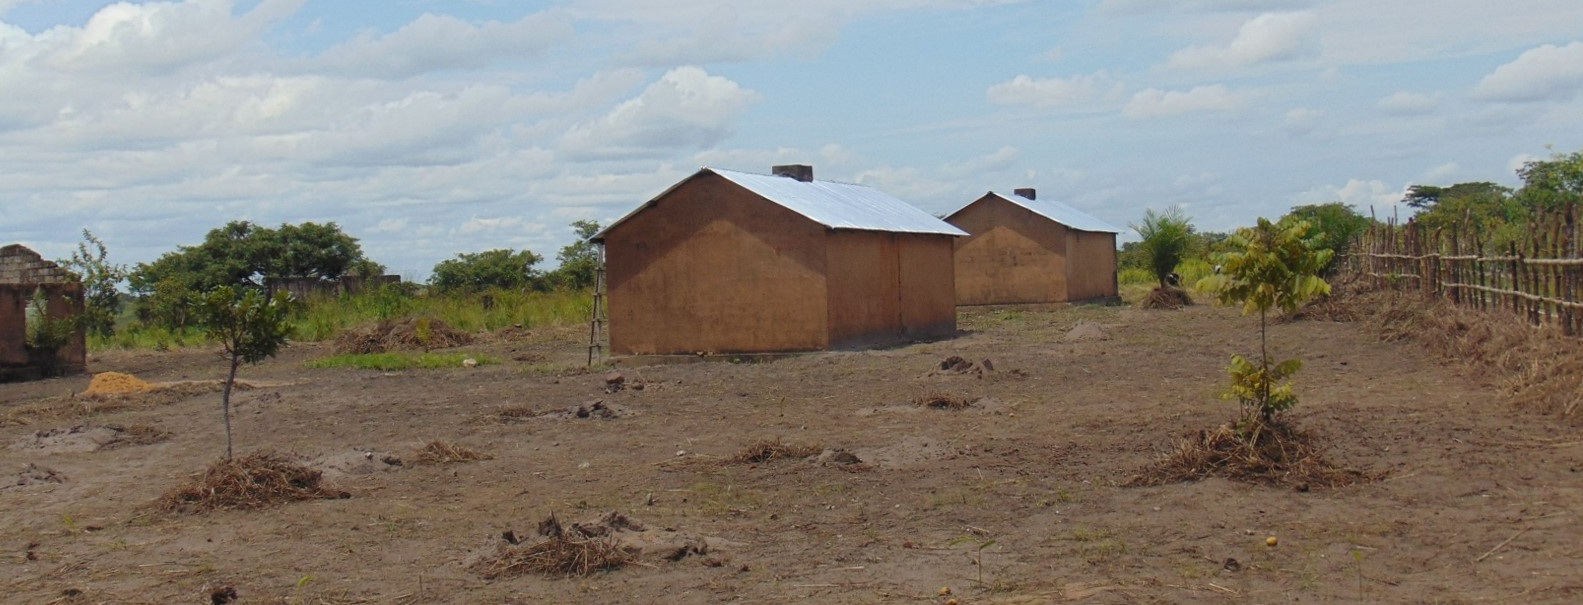 Renovated girls' dormitory with 40 beds for 55 girls – 2017. The other two dormitory building remain in ruin.